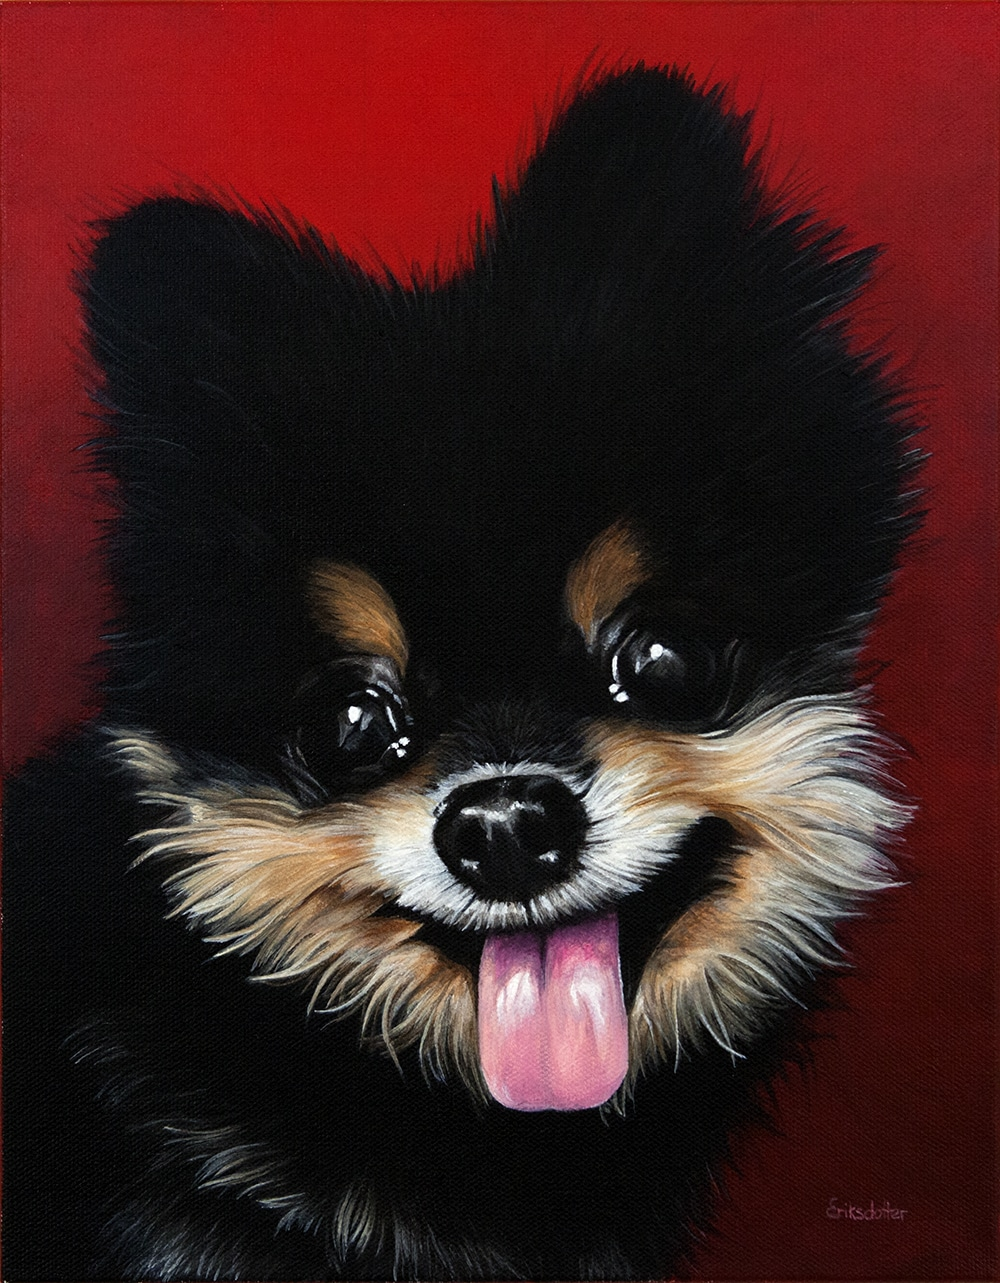 Custom dog portrait of a pomeranian dog by fine arts painter Erica Eriksdotter